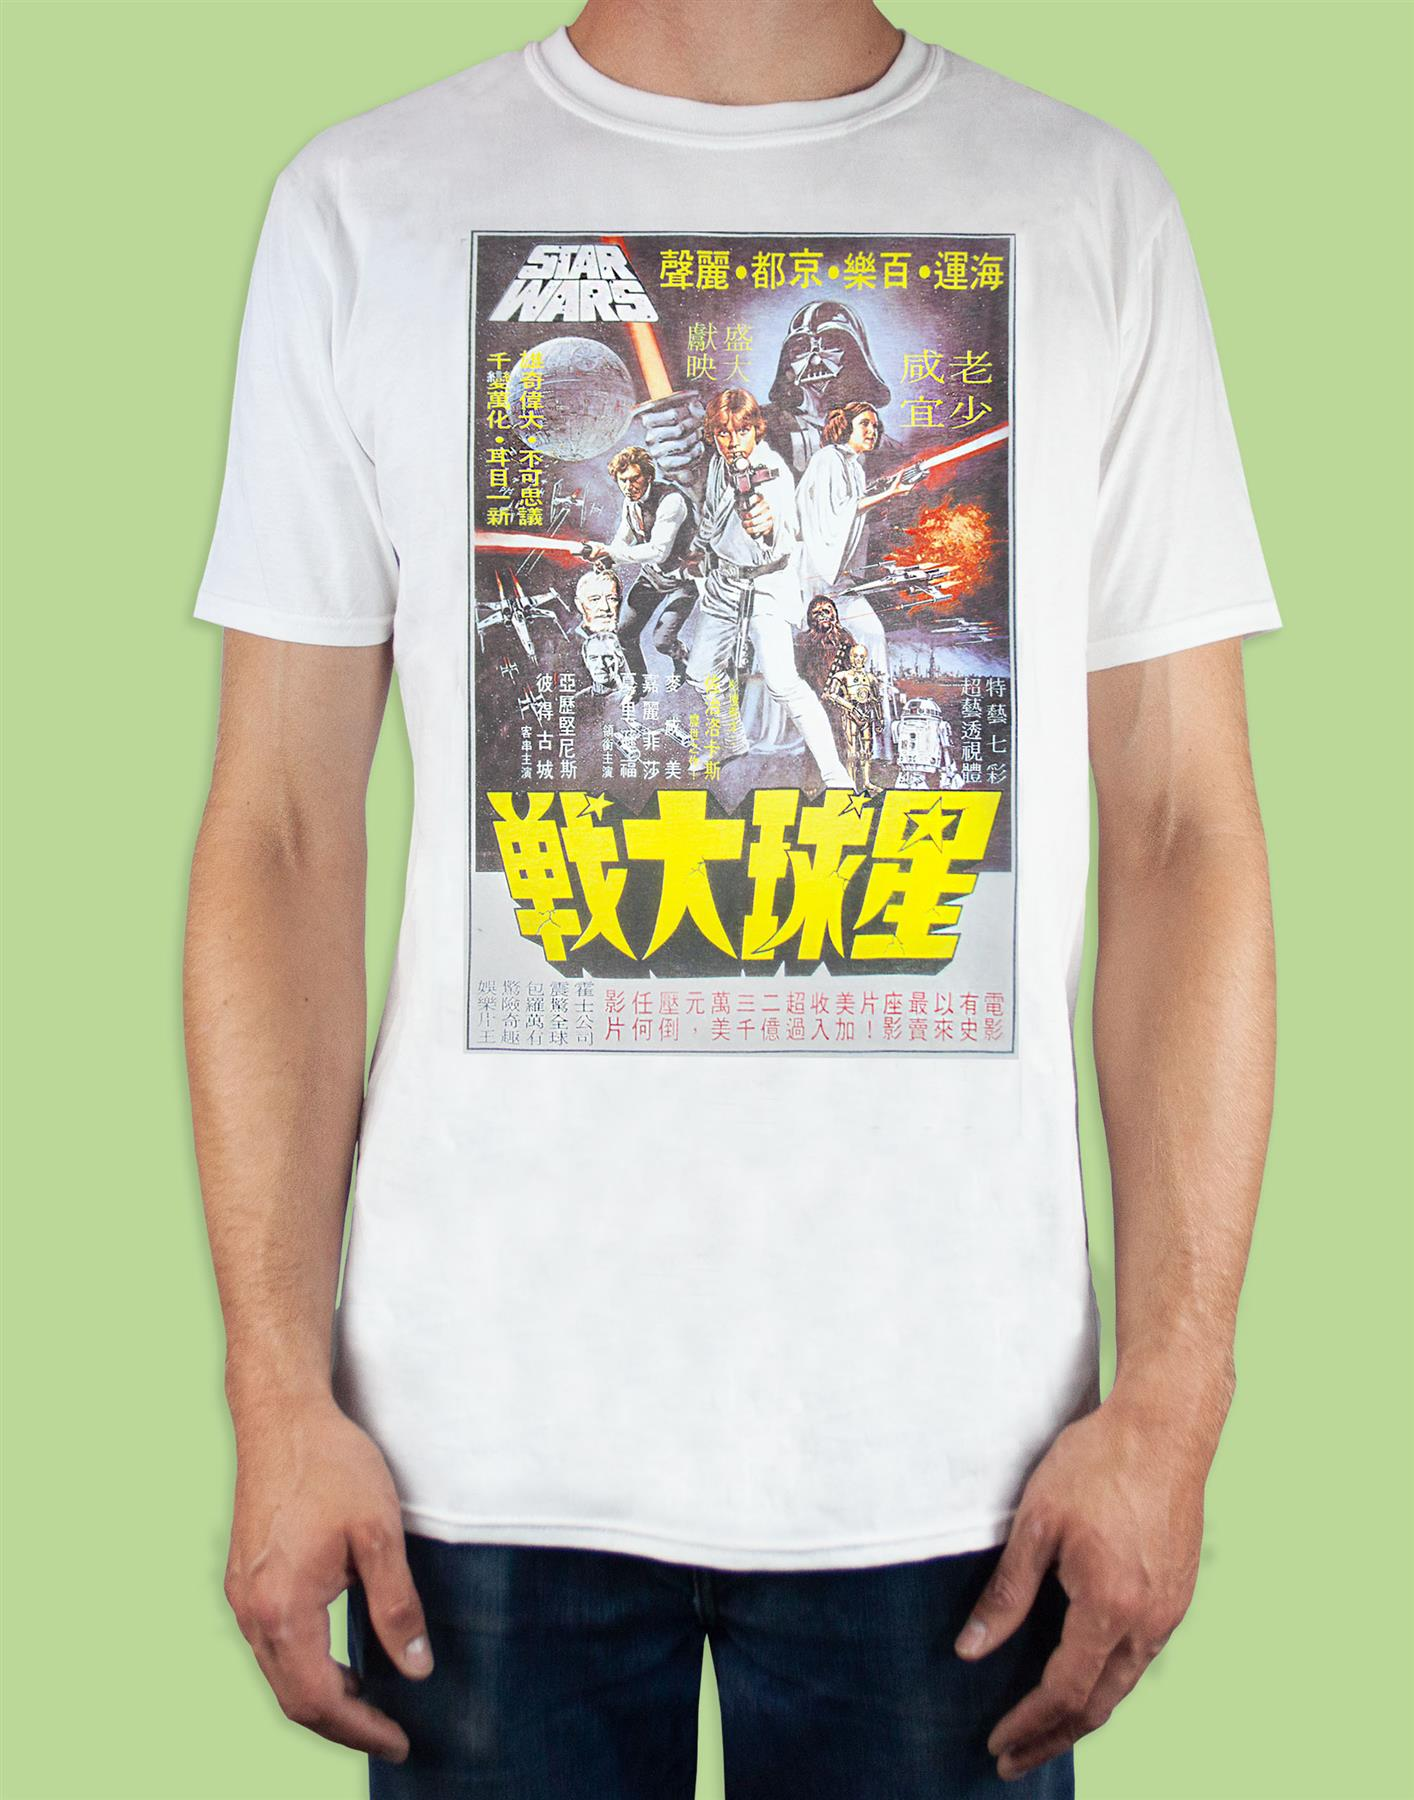 Star-Wars-A-New-Hope-Vintage-Japanese-Poster-Men-039-s-T-Shirt thumbnail 2